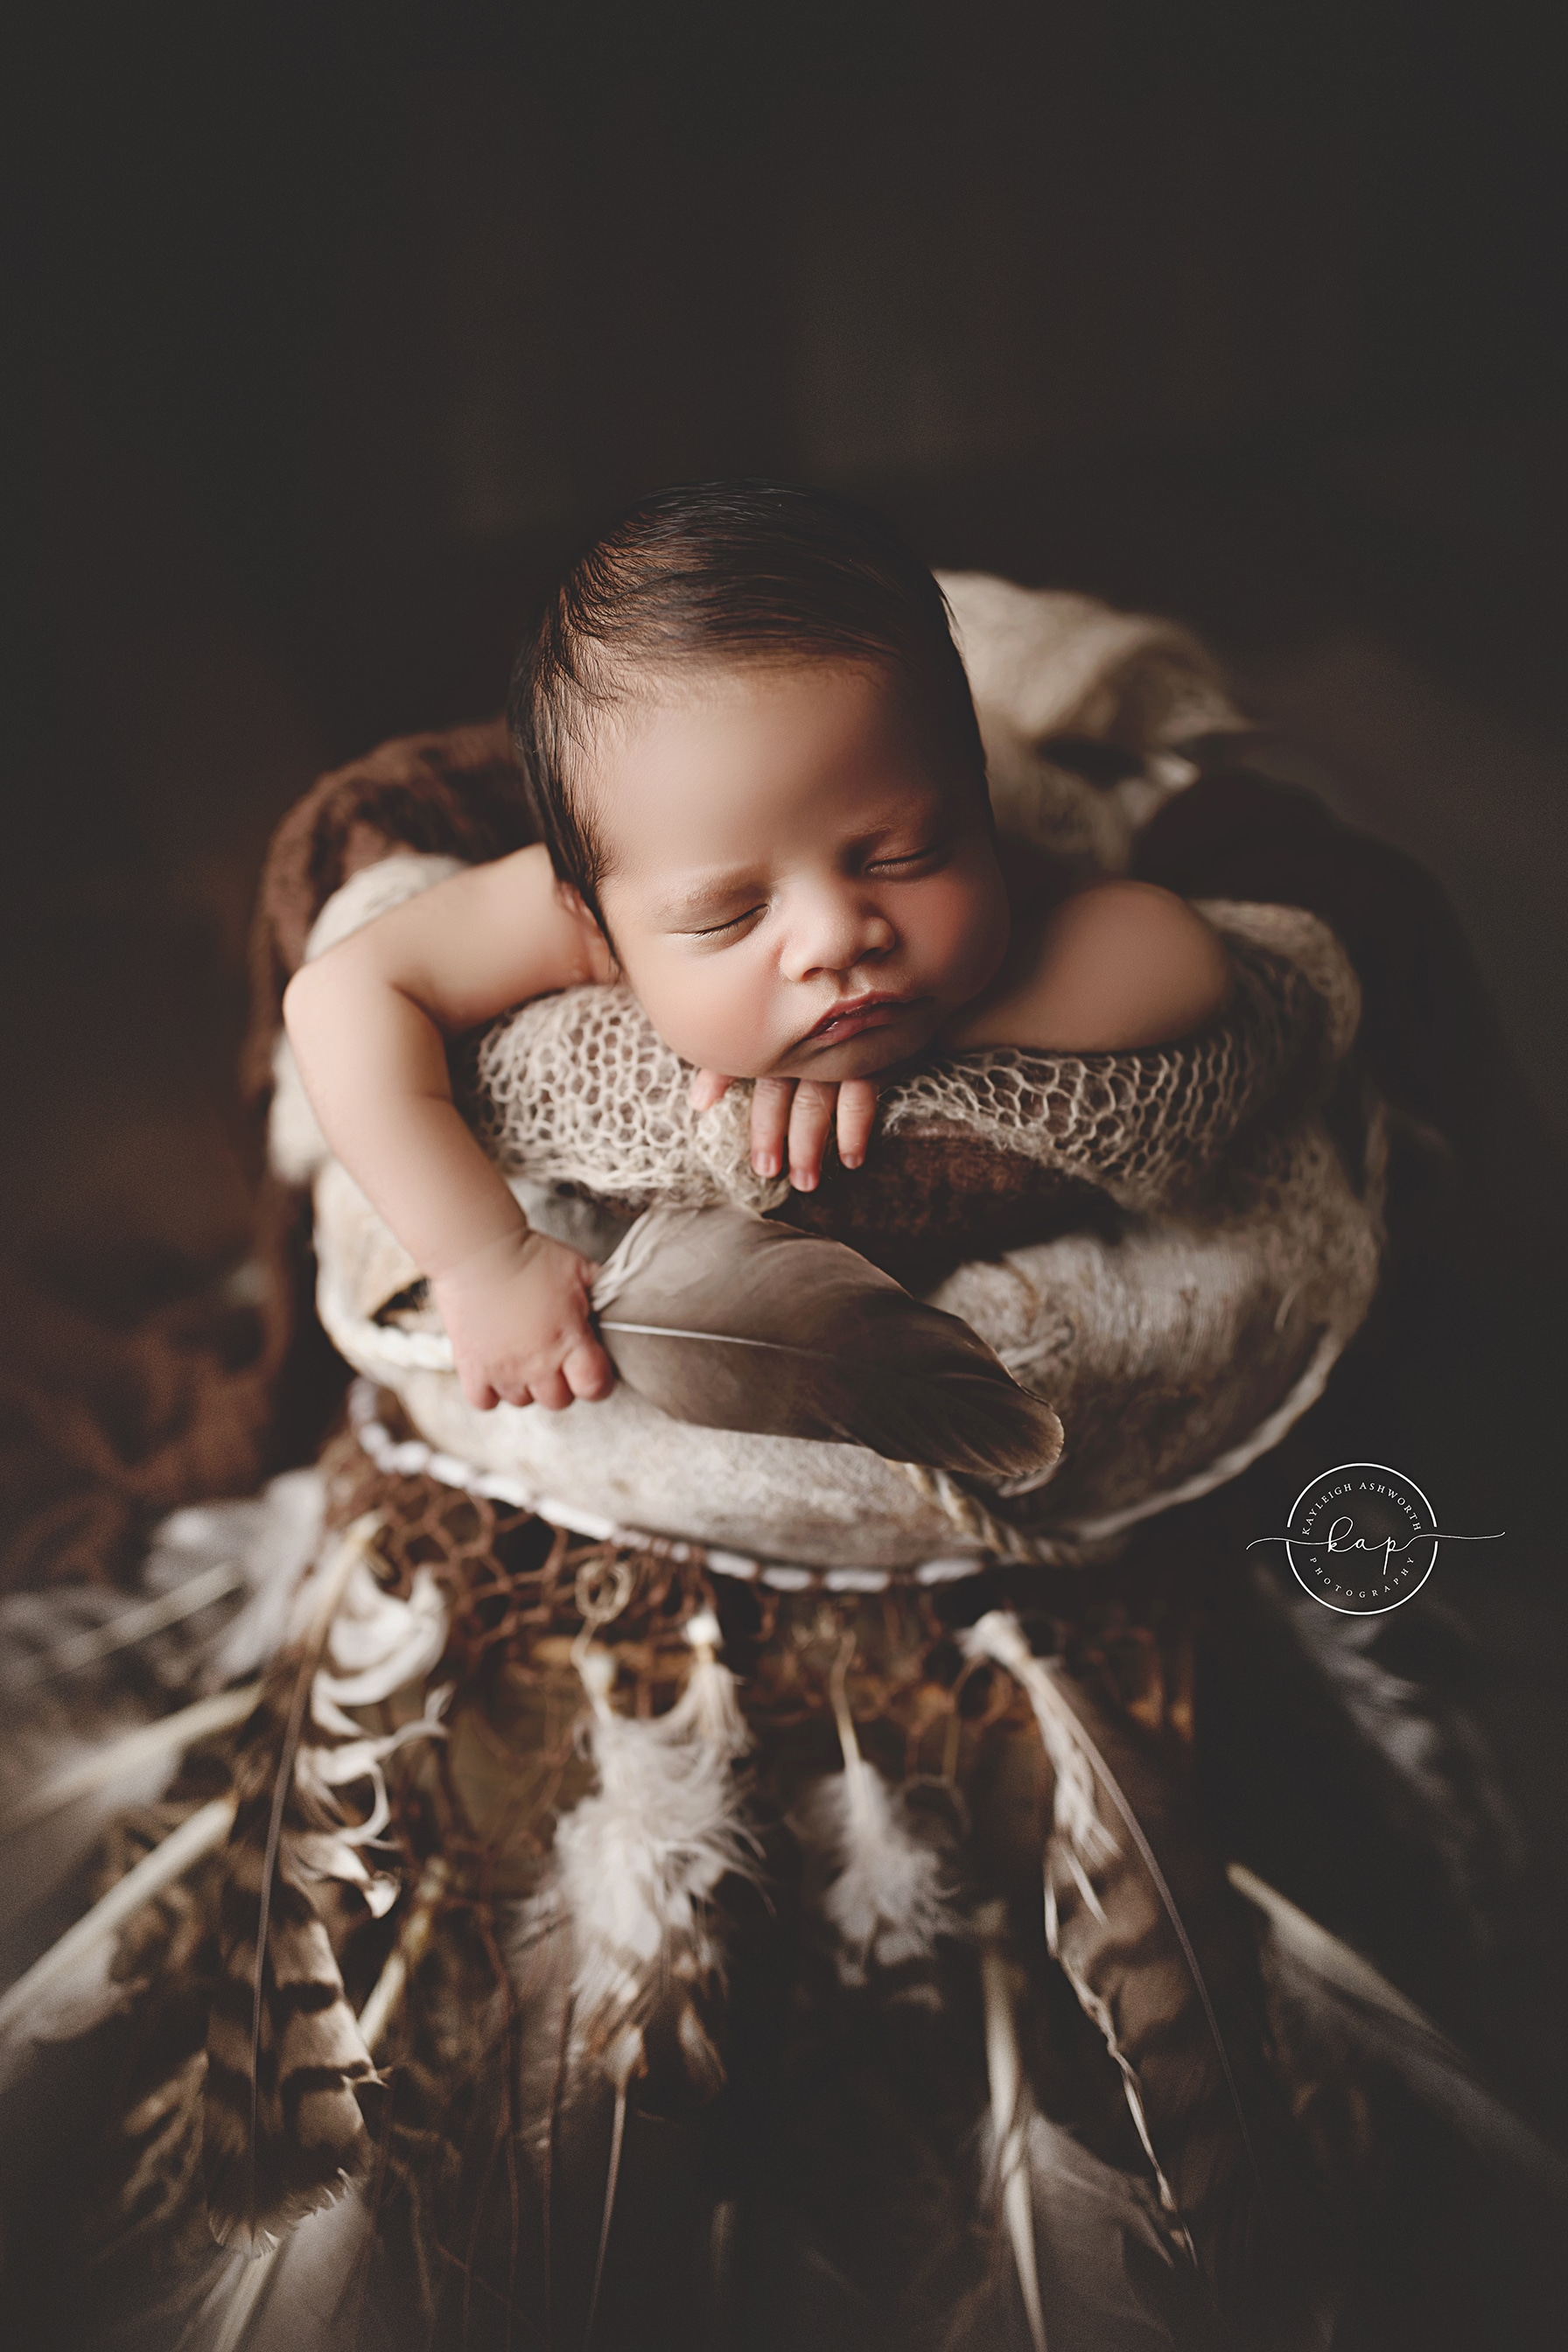 A newborn baby photo from Kayleigh Ashworth